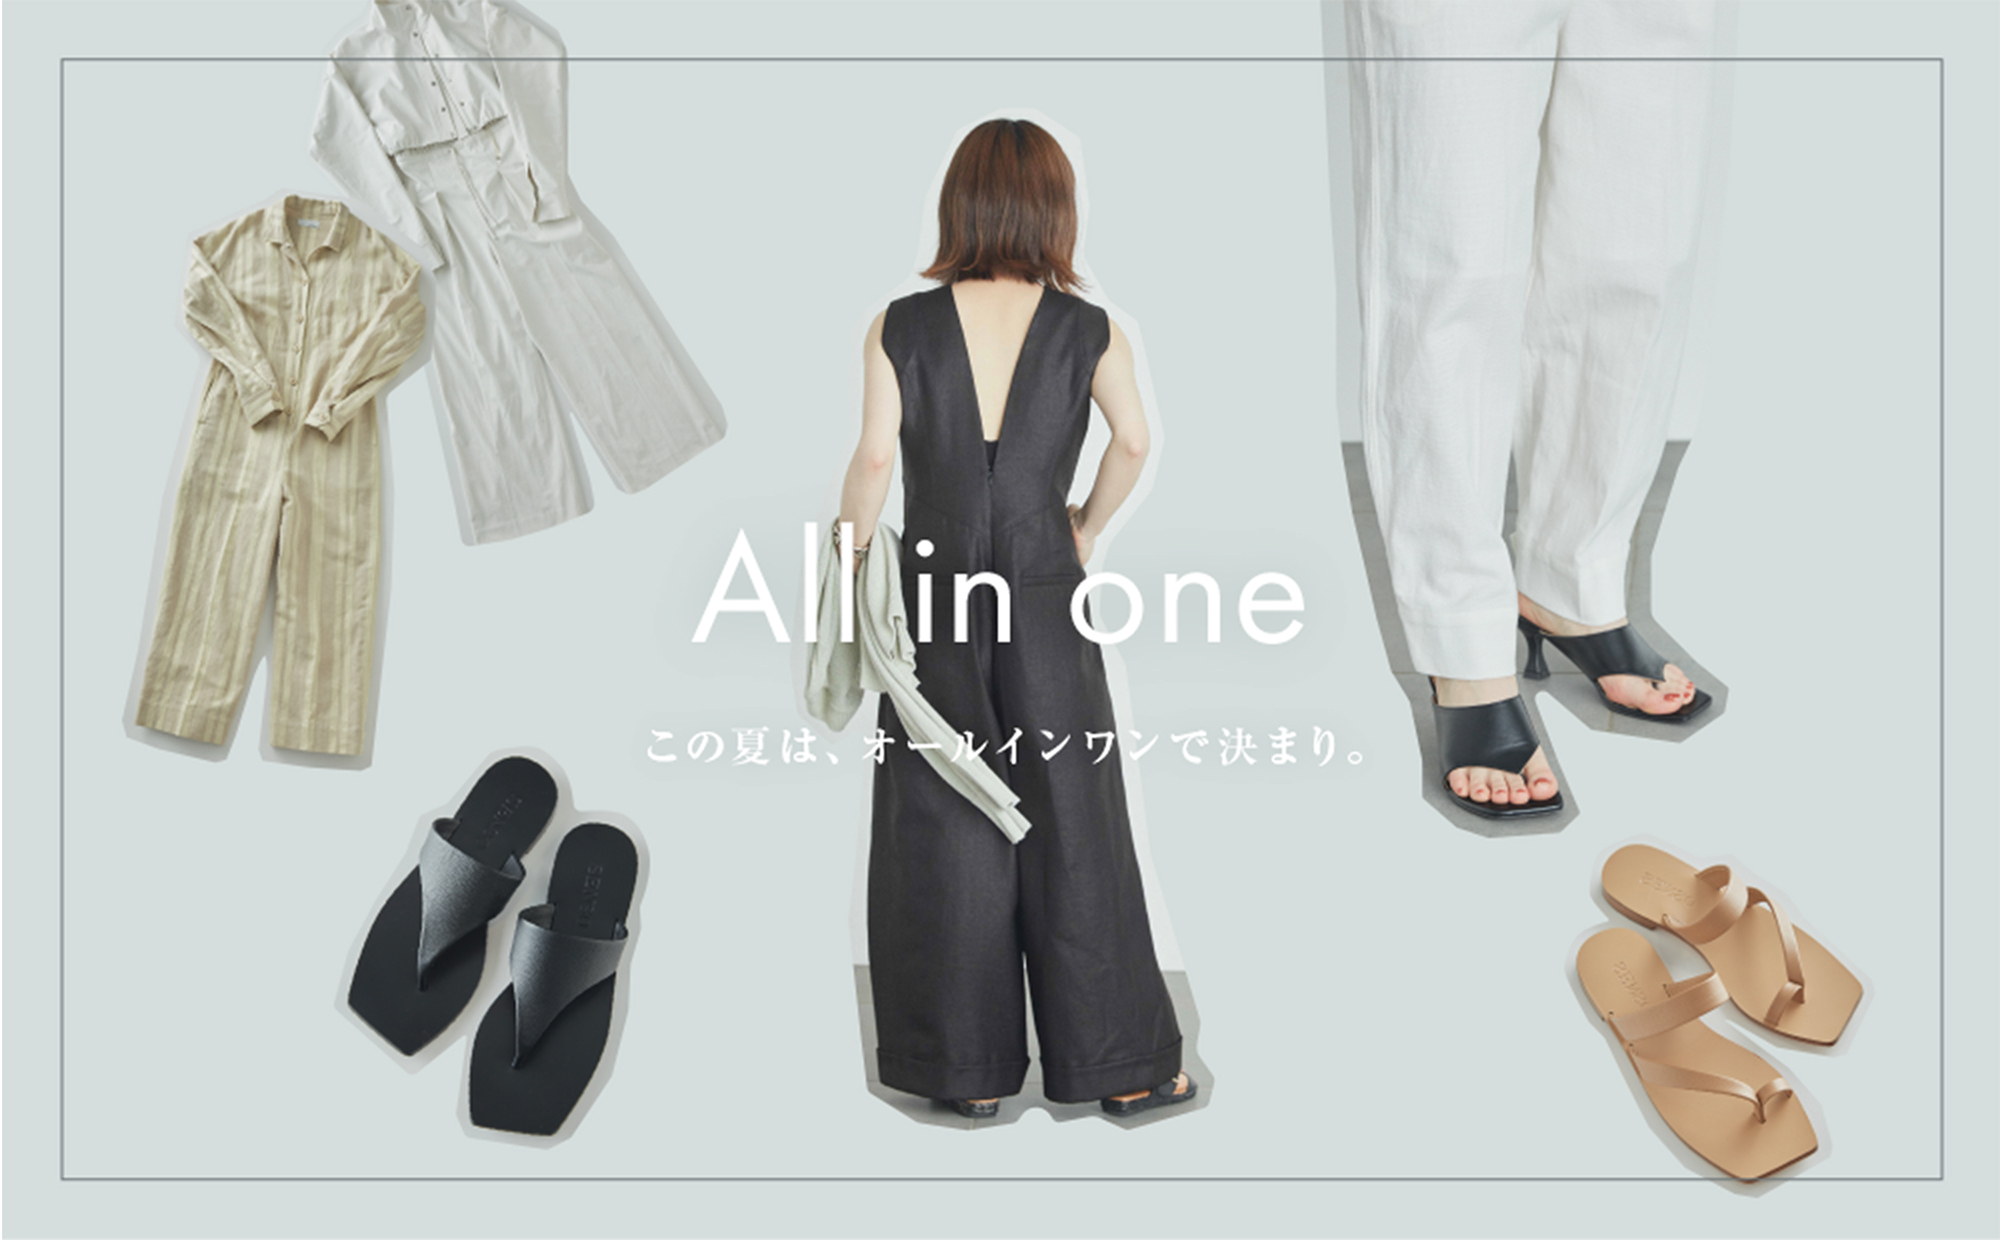 All in one この夏は、オールインワンで決まり。